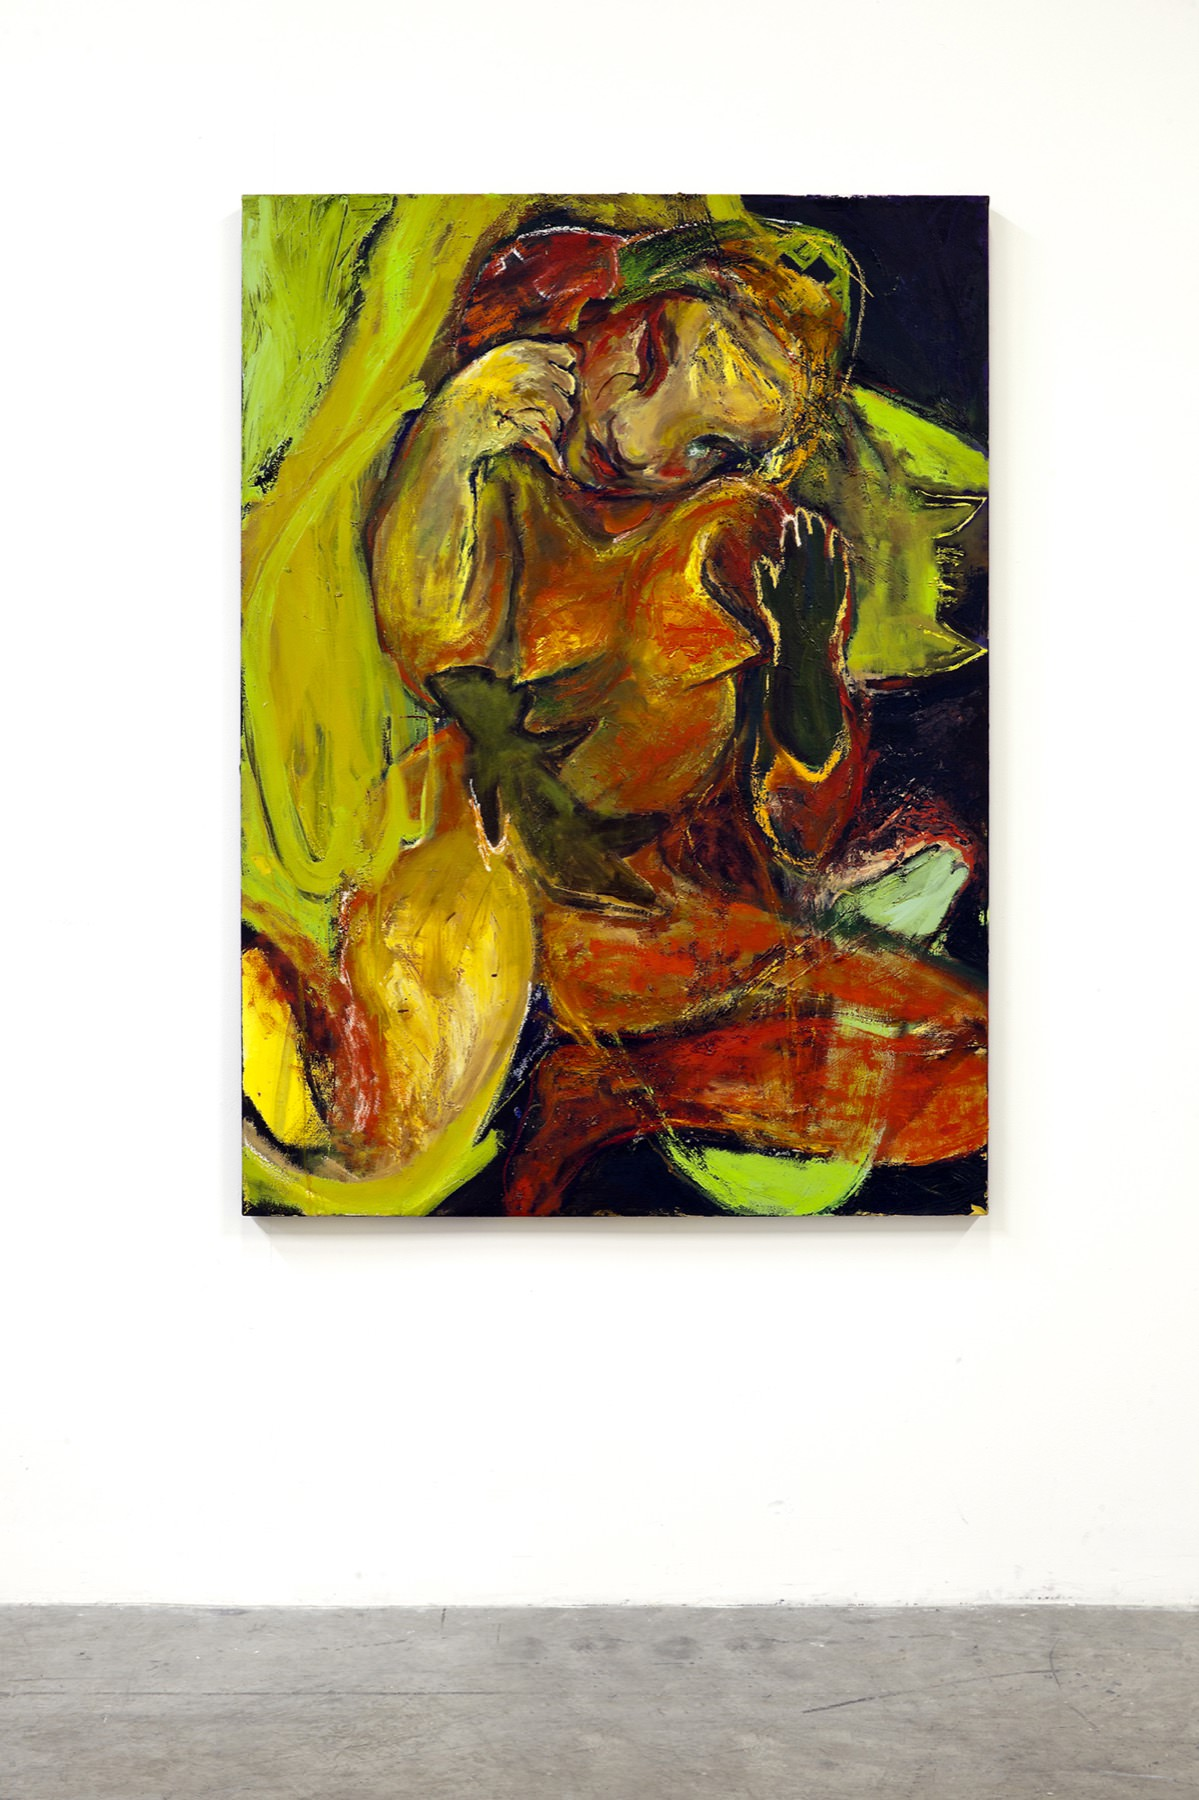 Image of Rita Ackermann, African Nurse, 2005-2008